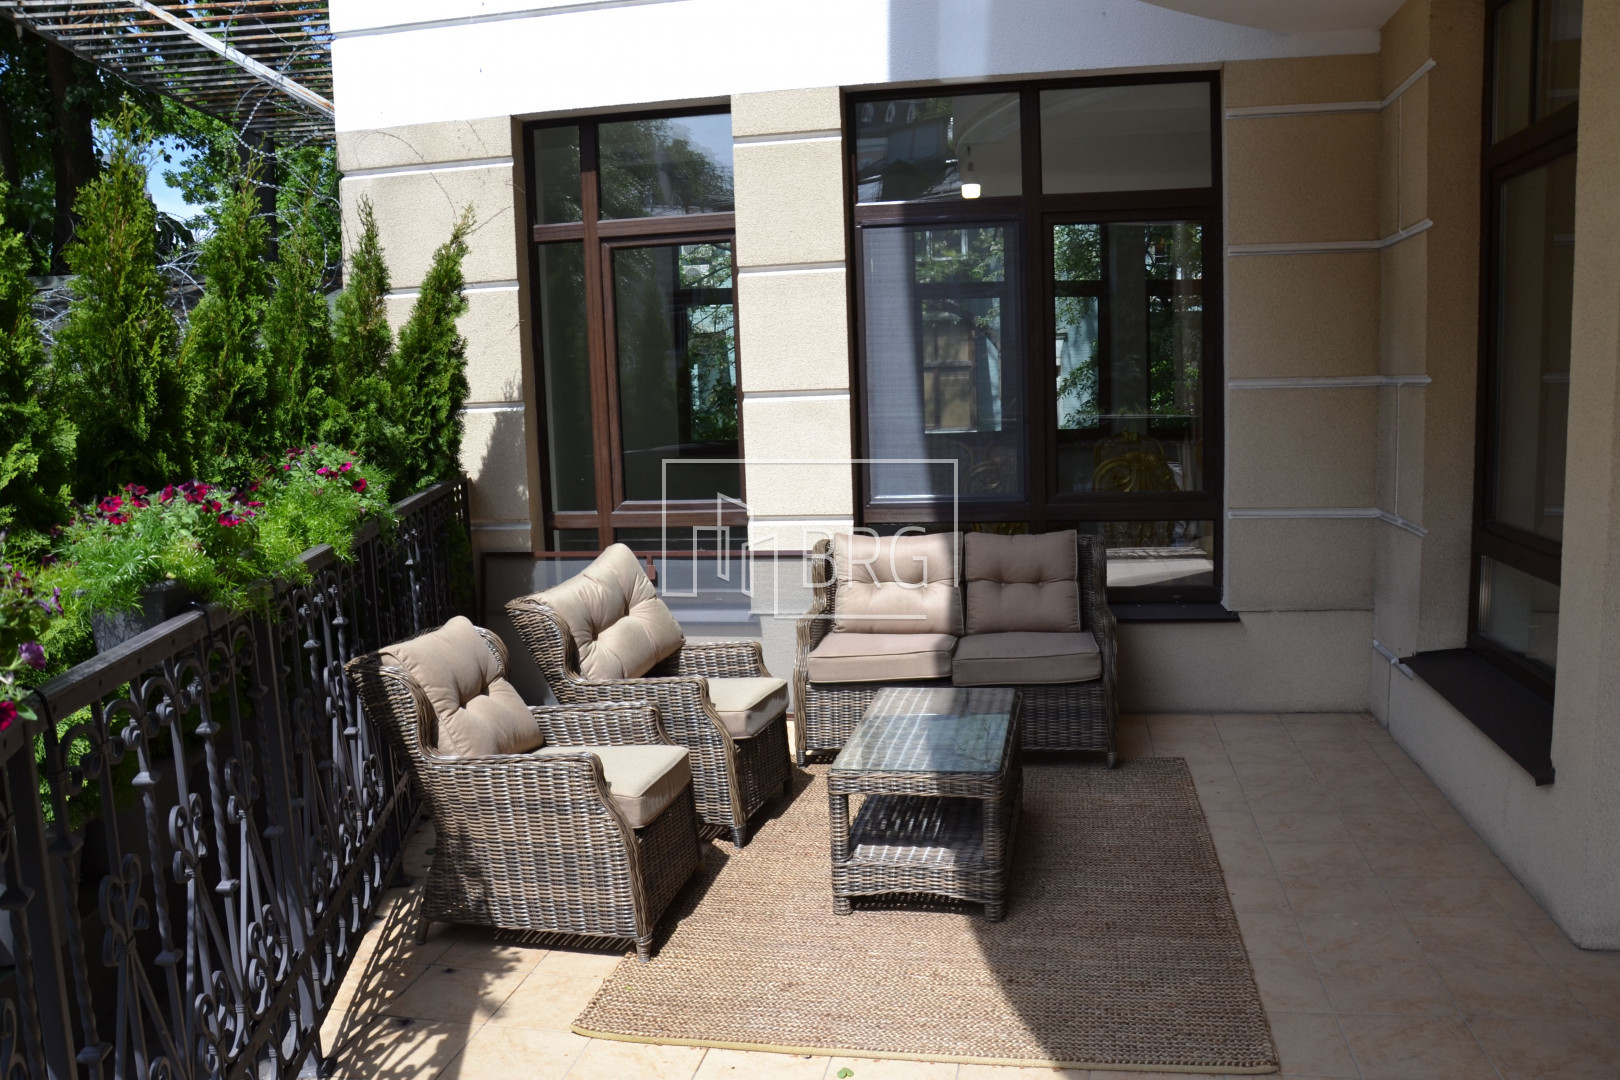 Sale 4-room apartment with a terrace in the center of Shevchenko district. Kiev